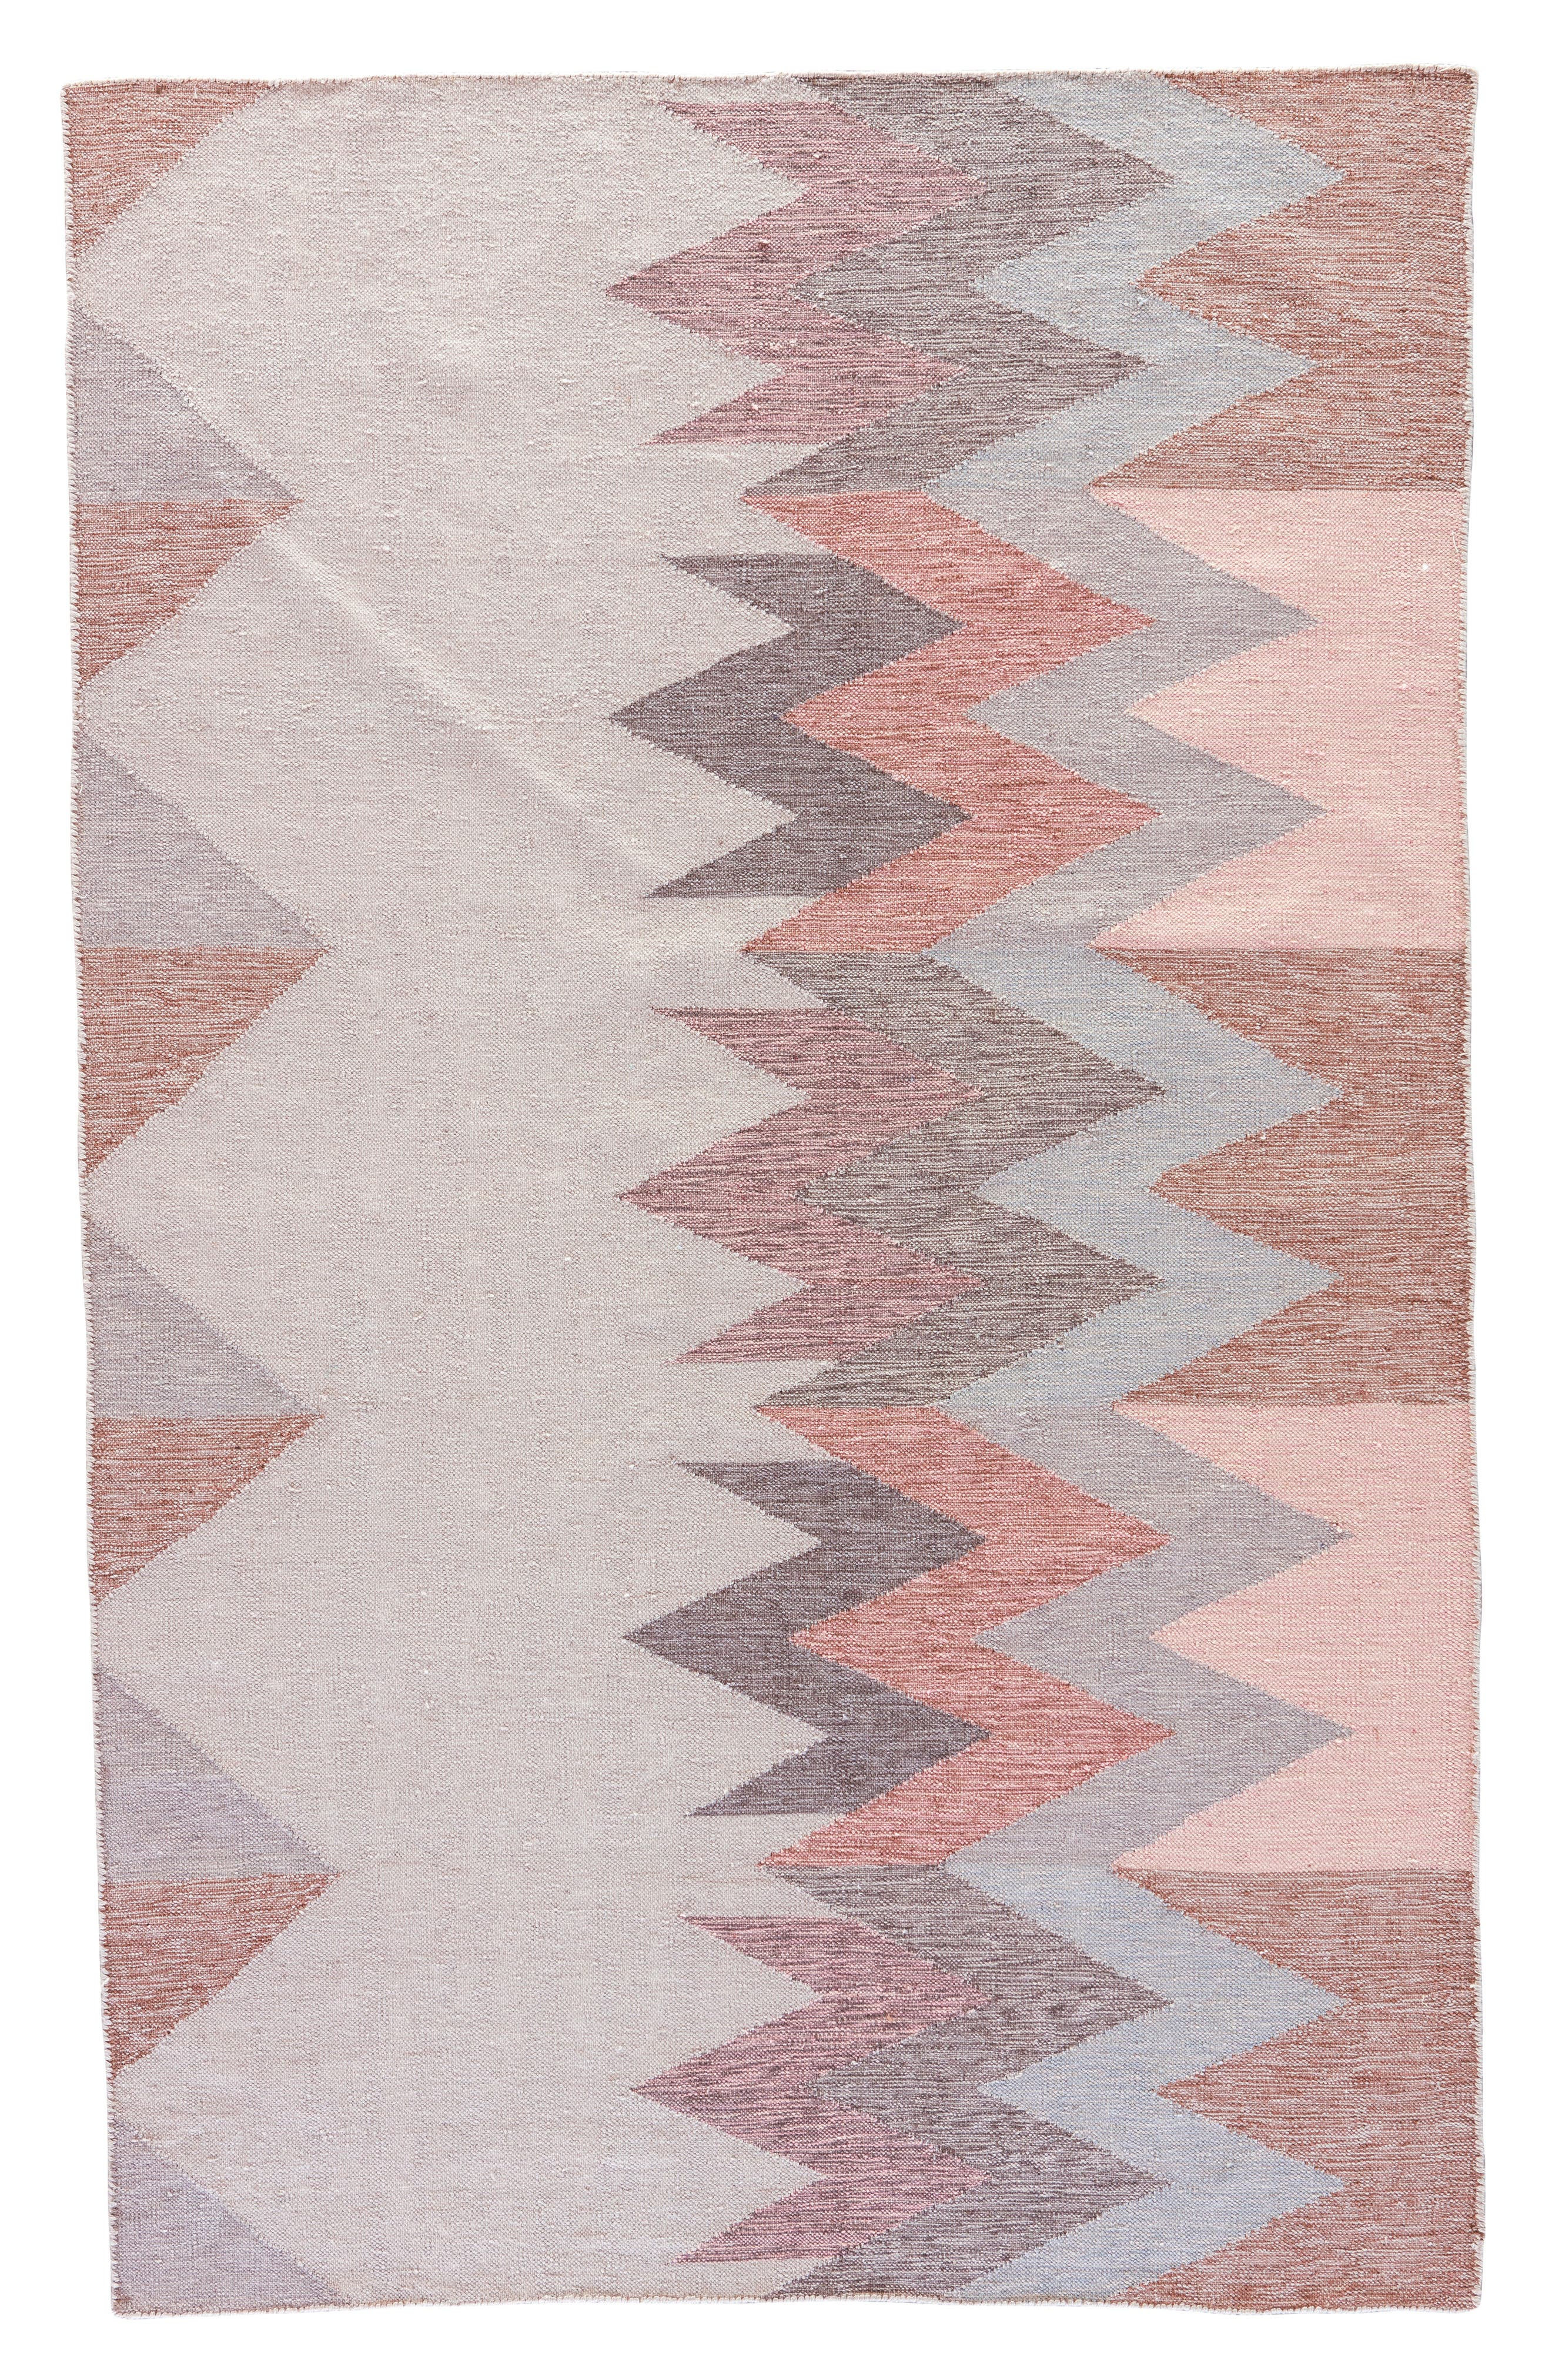 Geo Pattern Indoor/Outdoor Rug,                             Main thumbnail 1, color,                             Natural